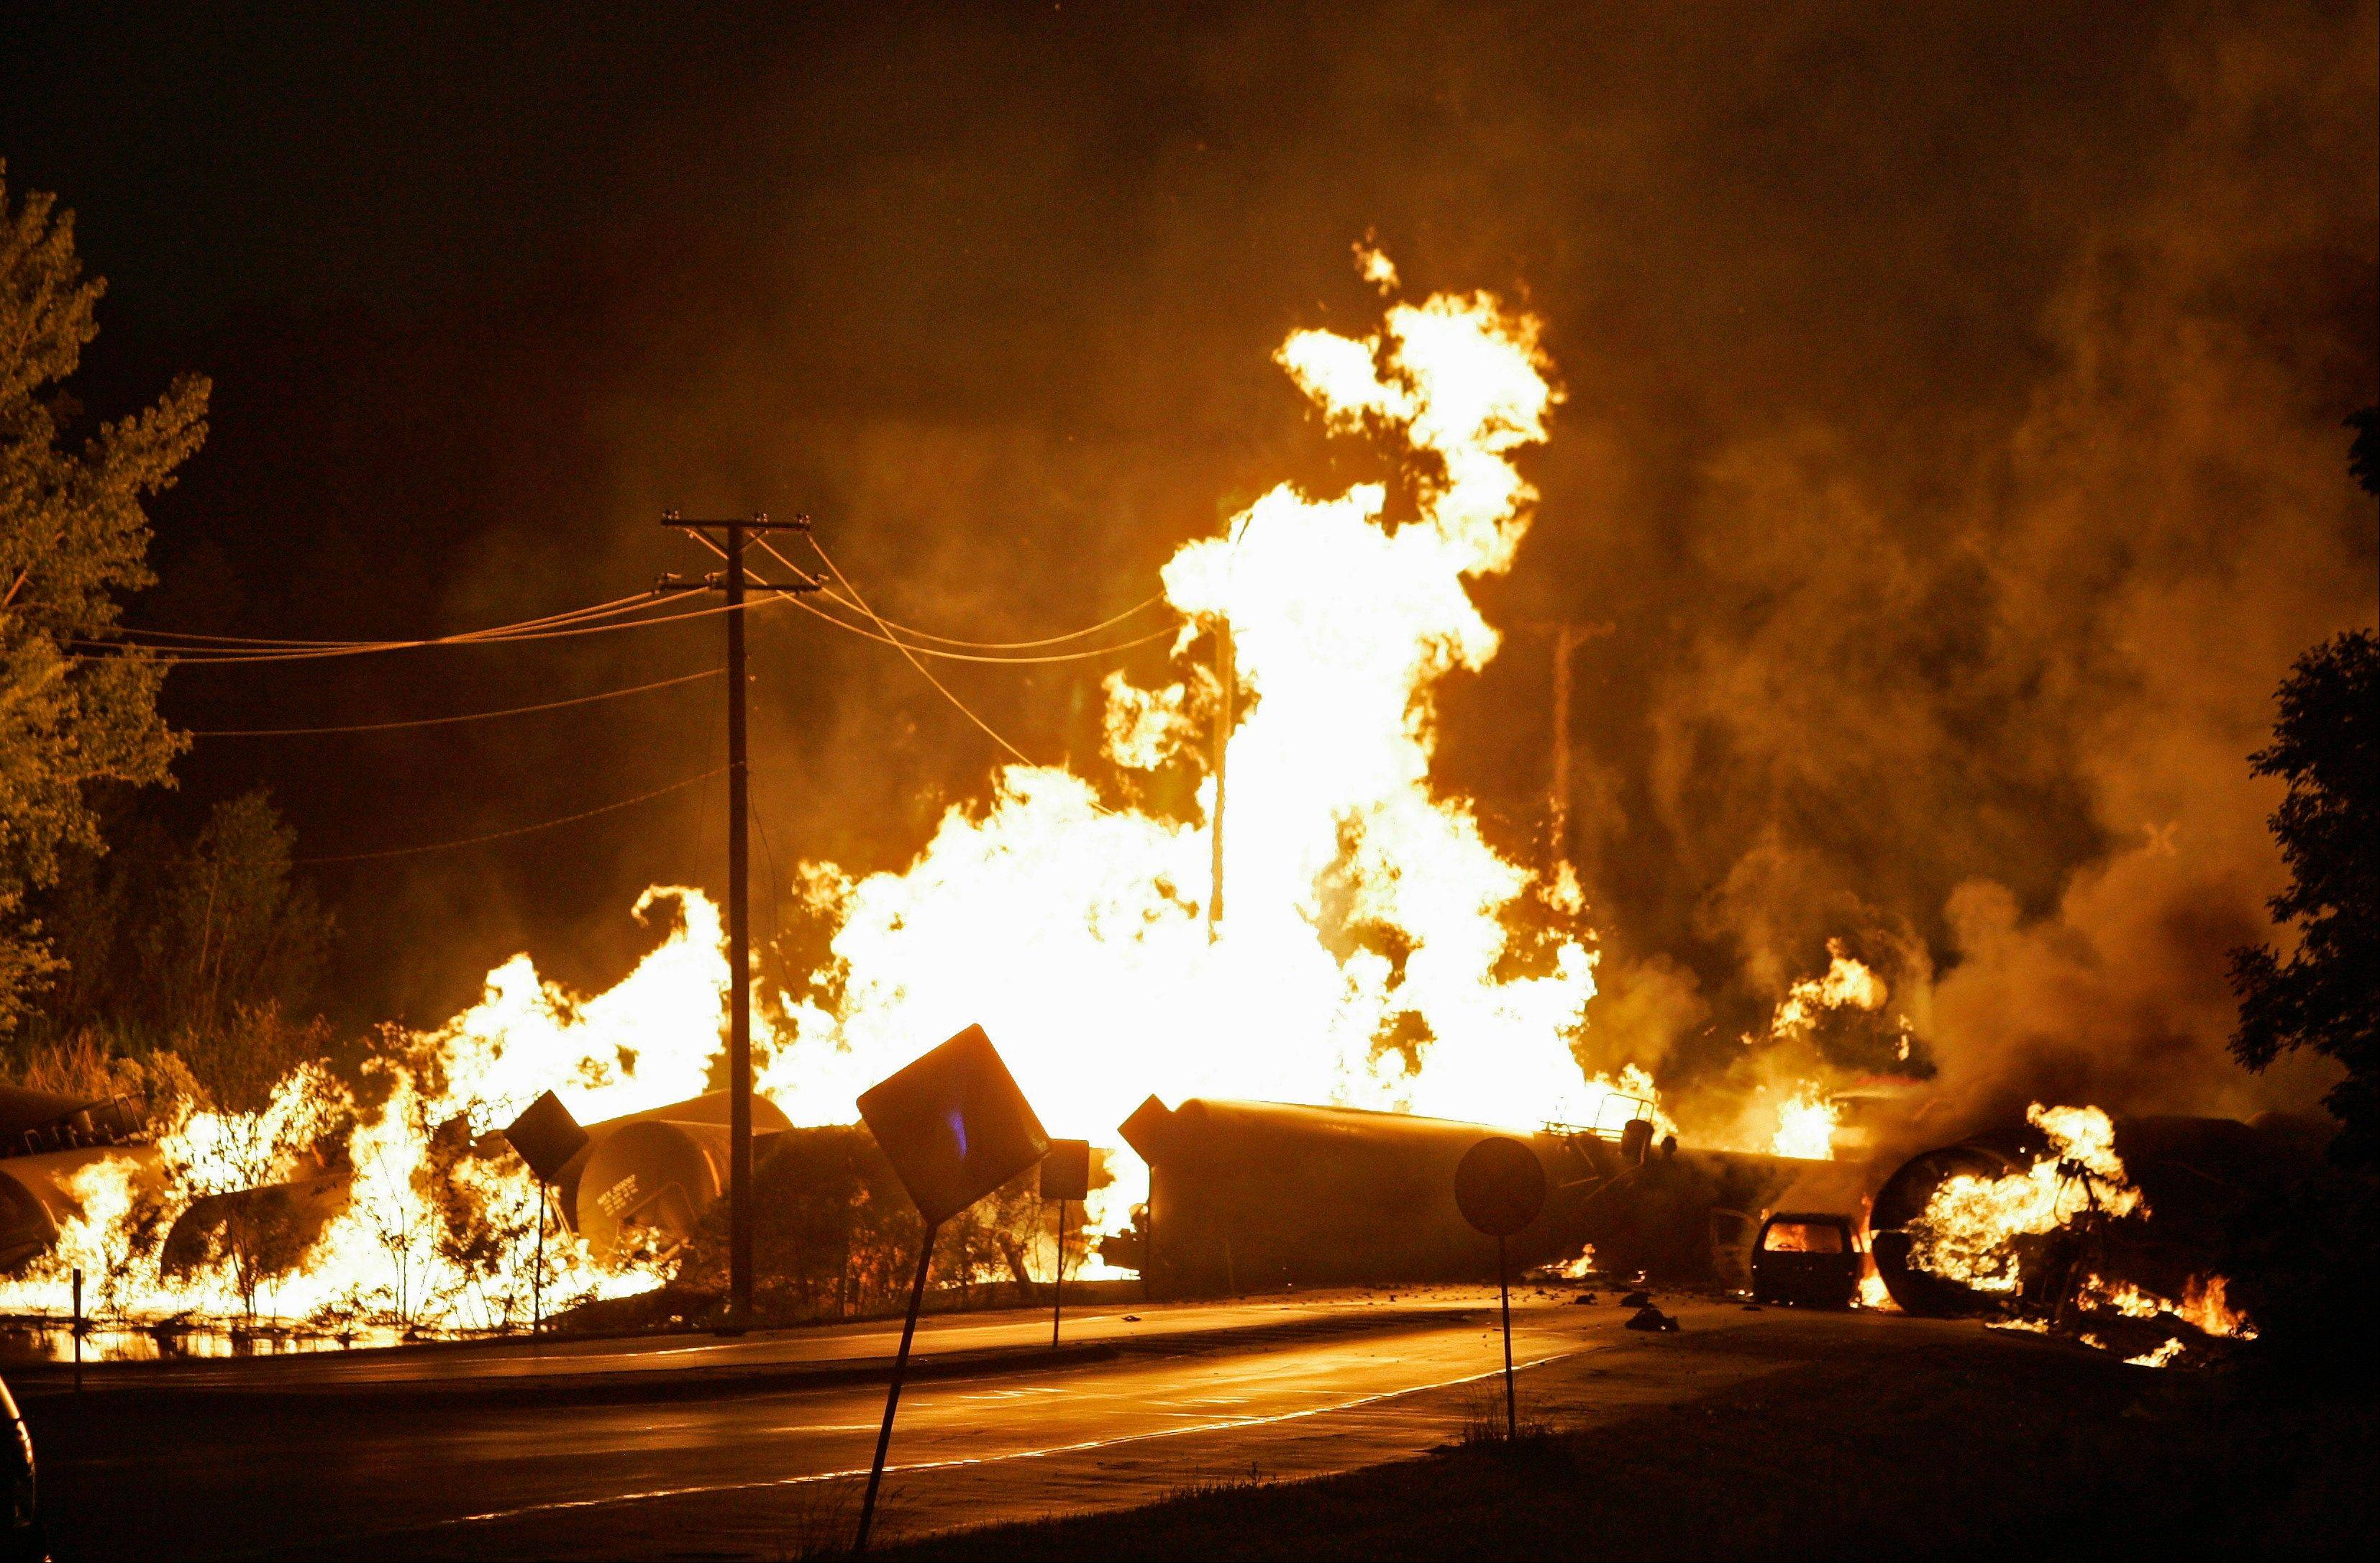 Flames engulf rail cars loaded with thousands of gallons of ethanol after a July 20, 2009, derailment in Cherry Valley, Ill.